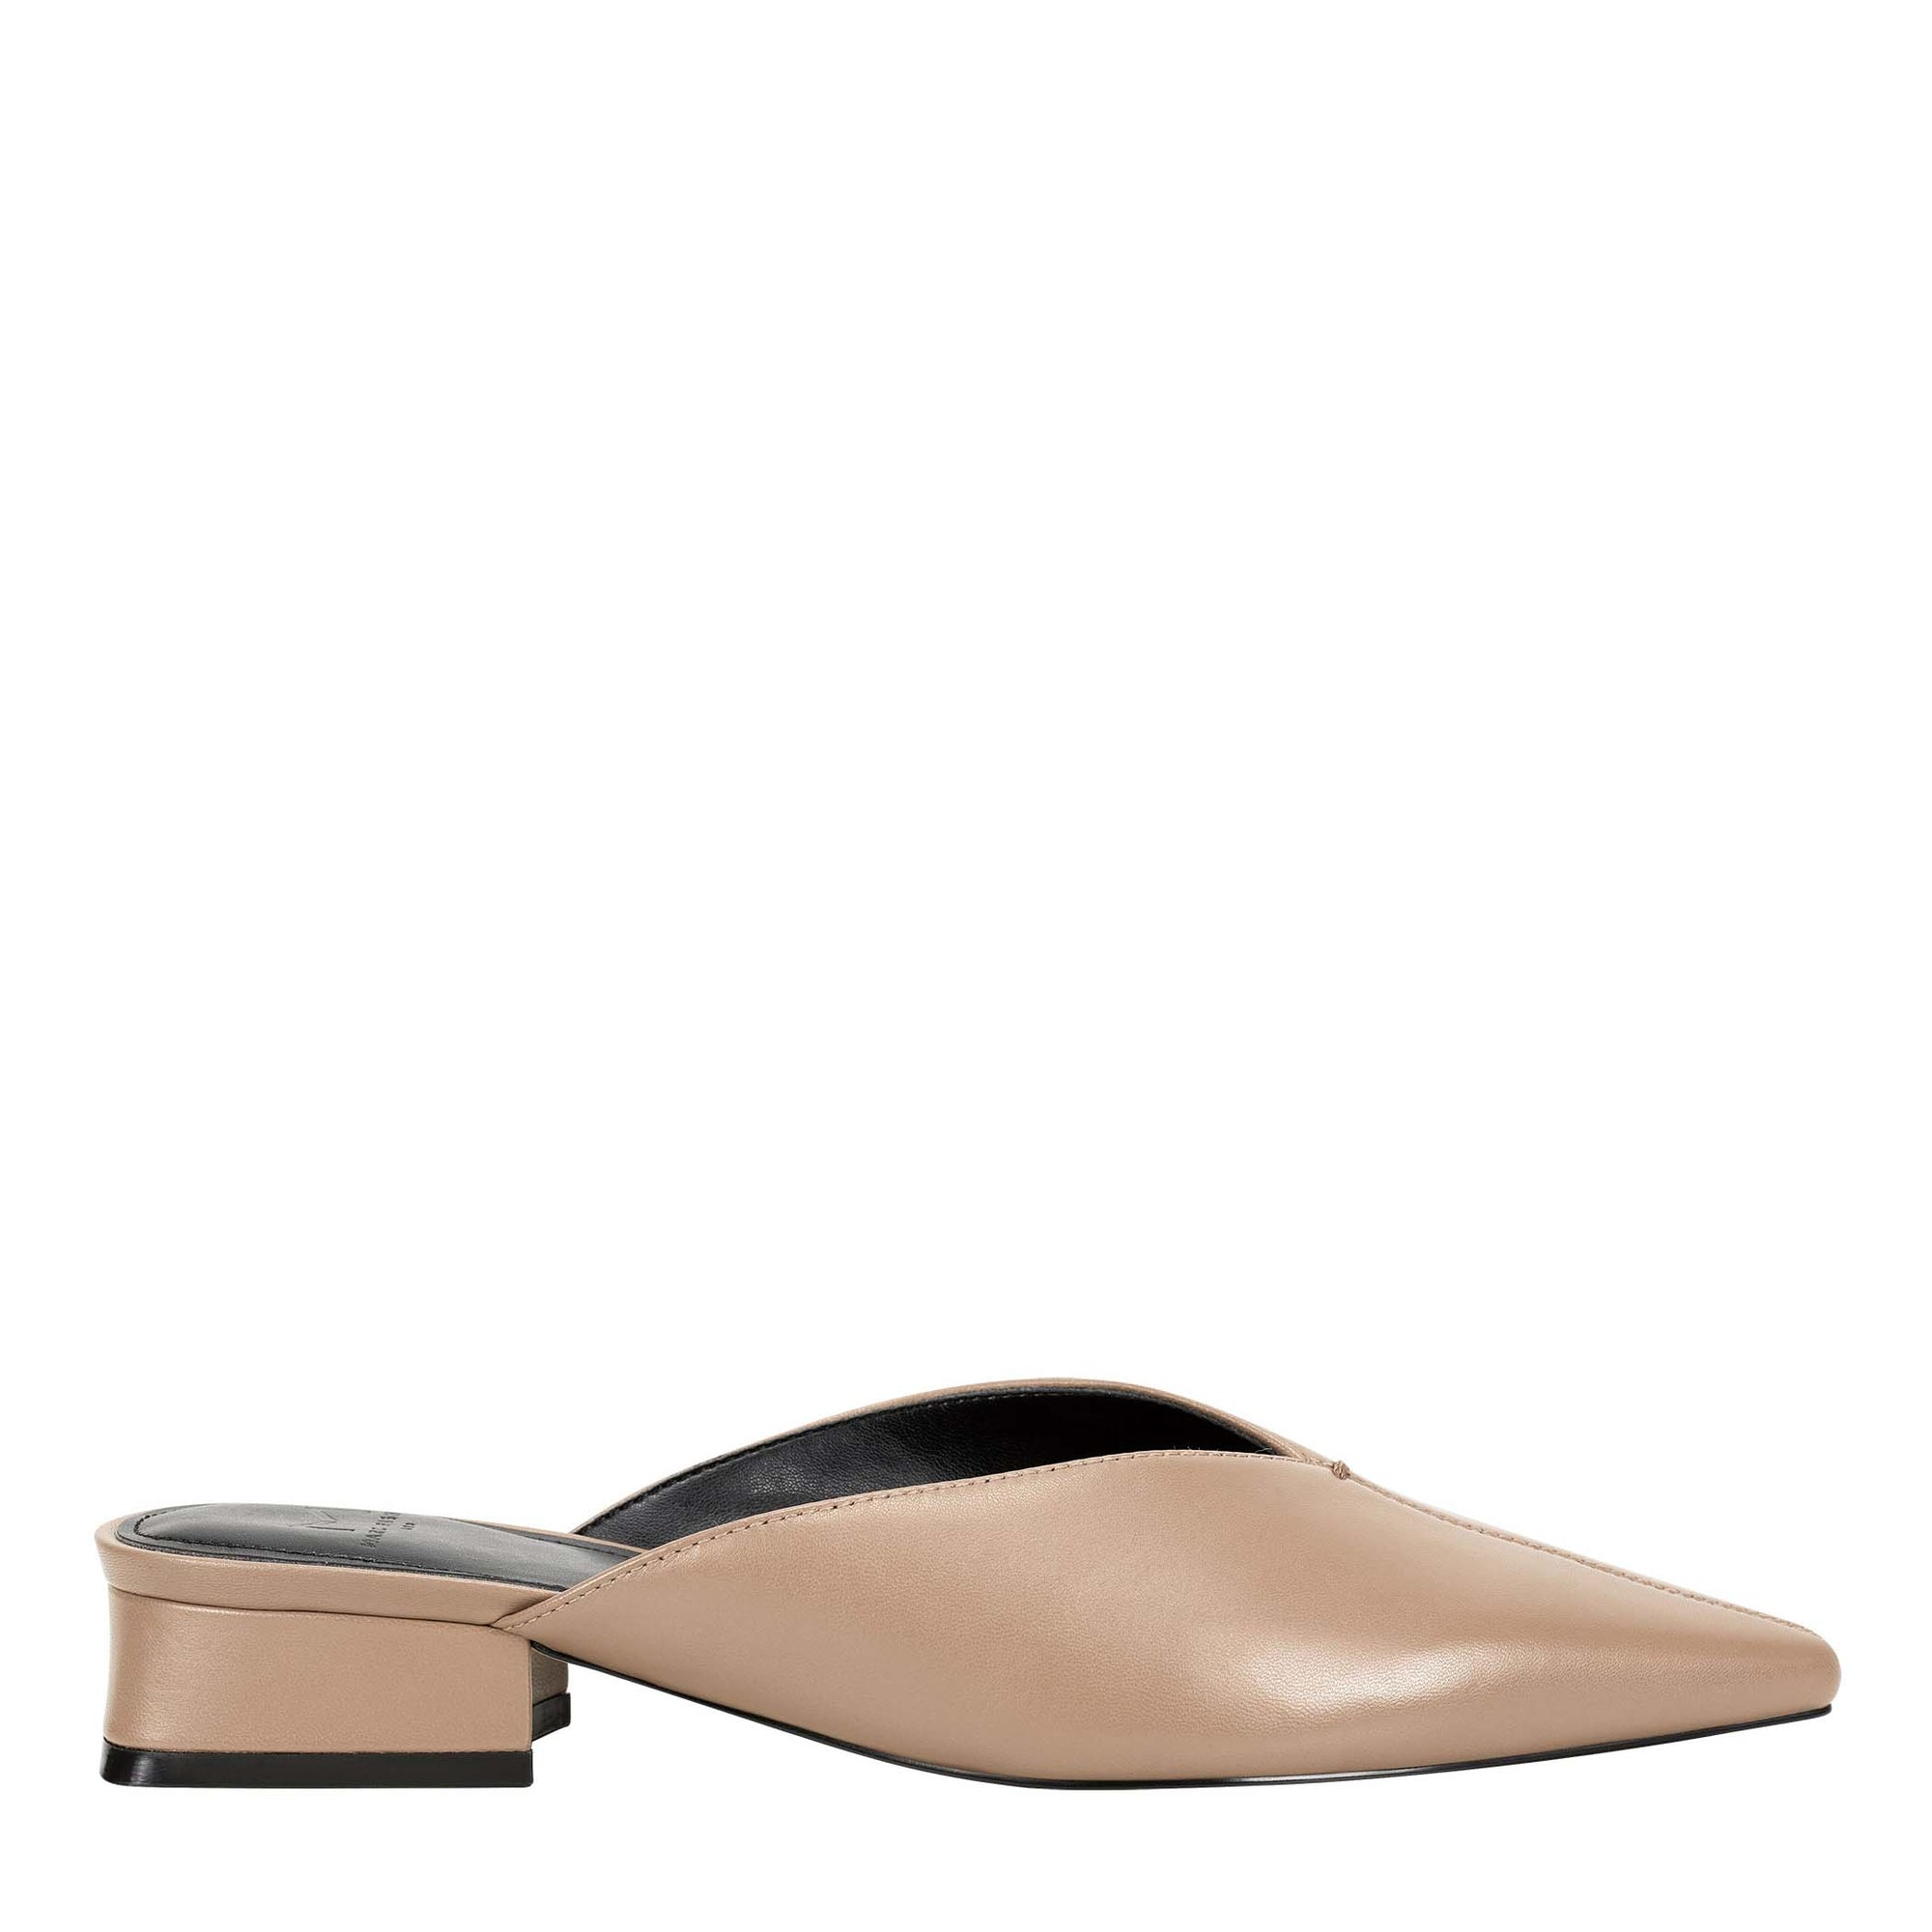 gilbert-pointy-toe-mule-in-taupe-leather